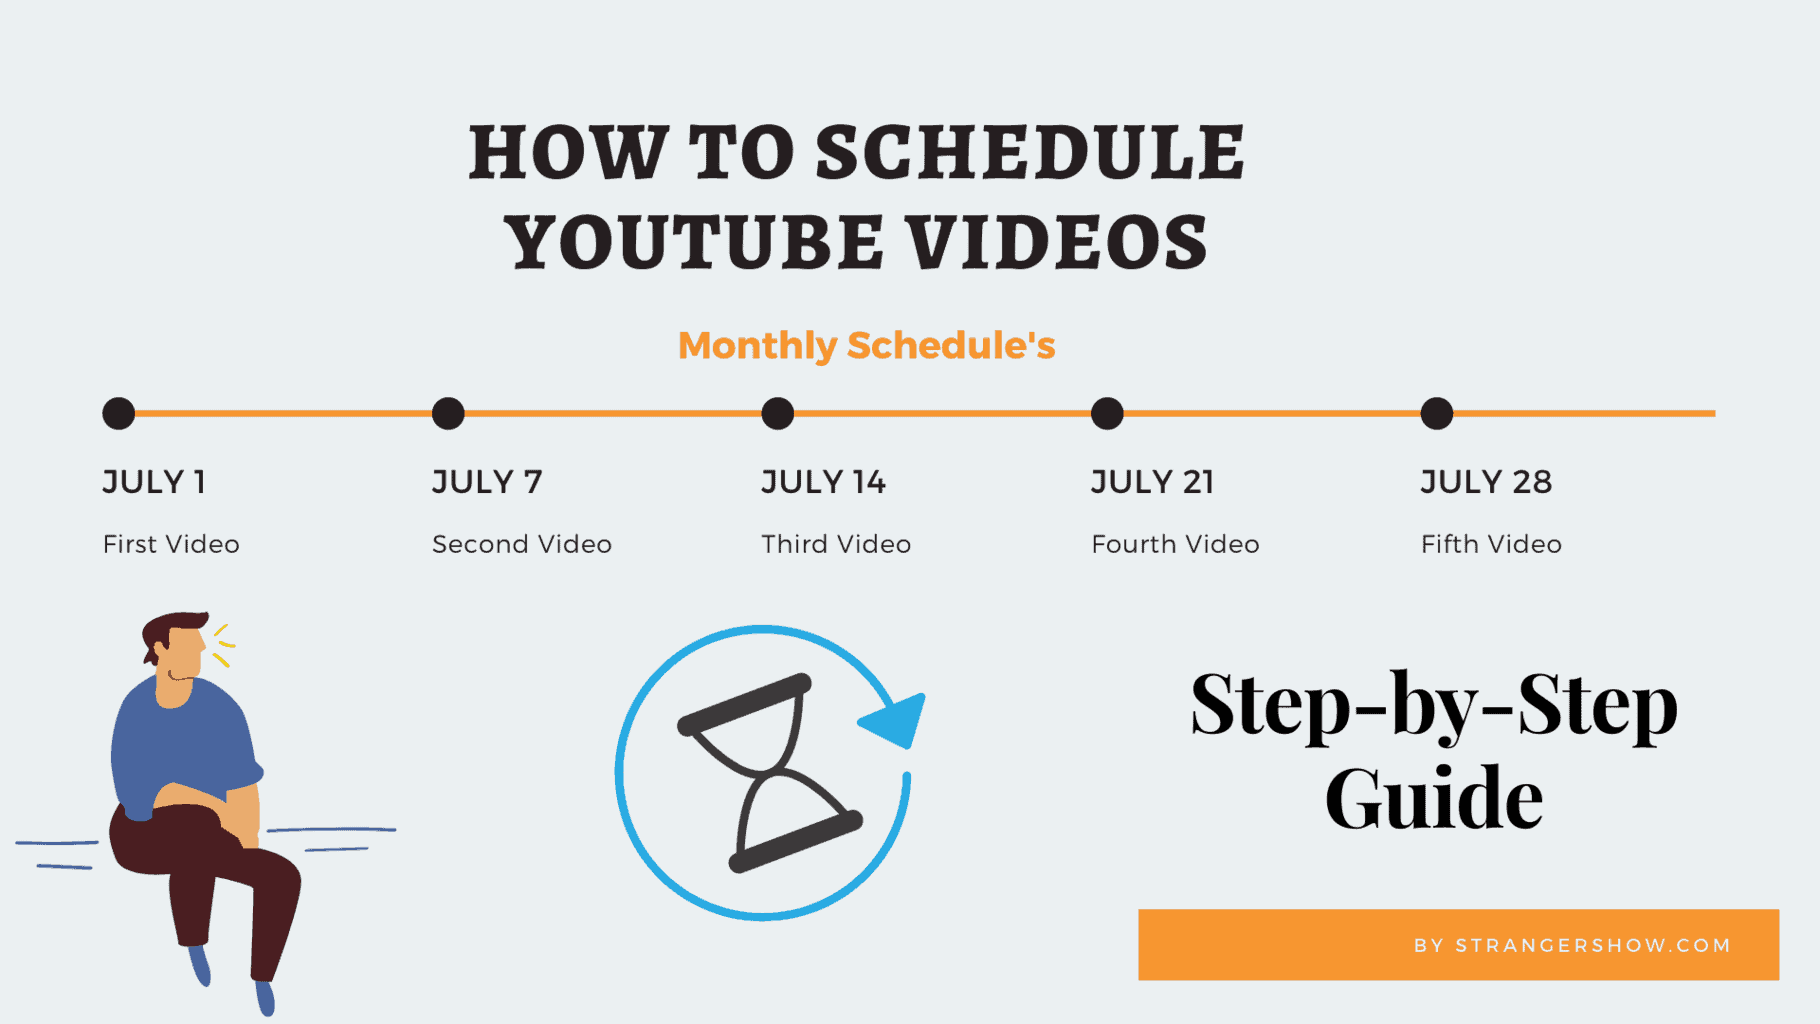 How To Schedule Youtube Videos In 2020 A Step By Step Guide